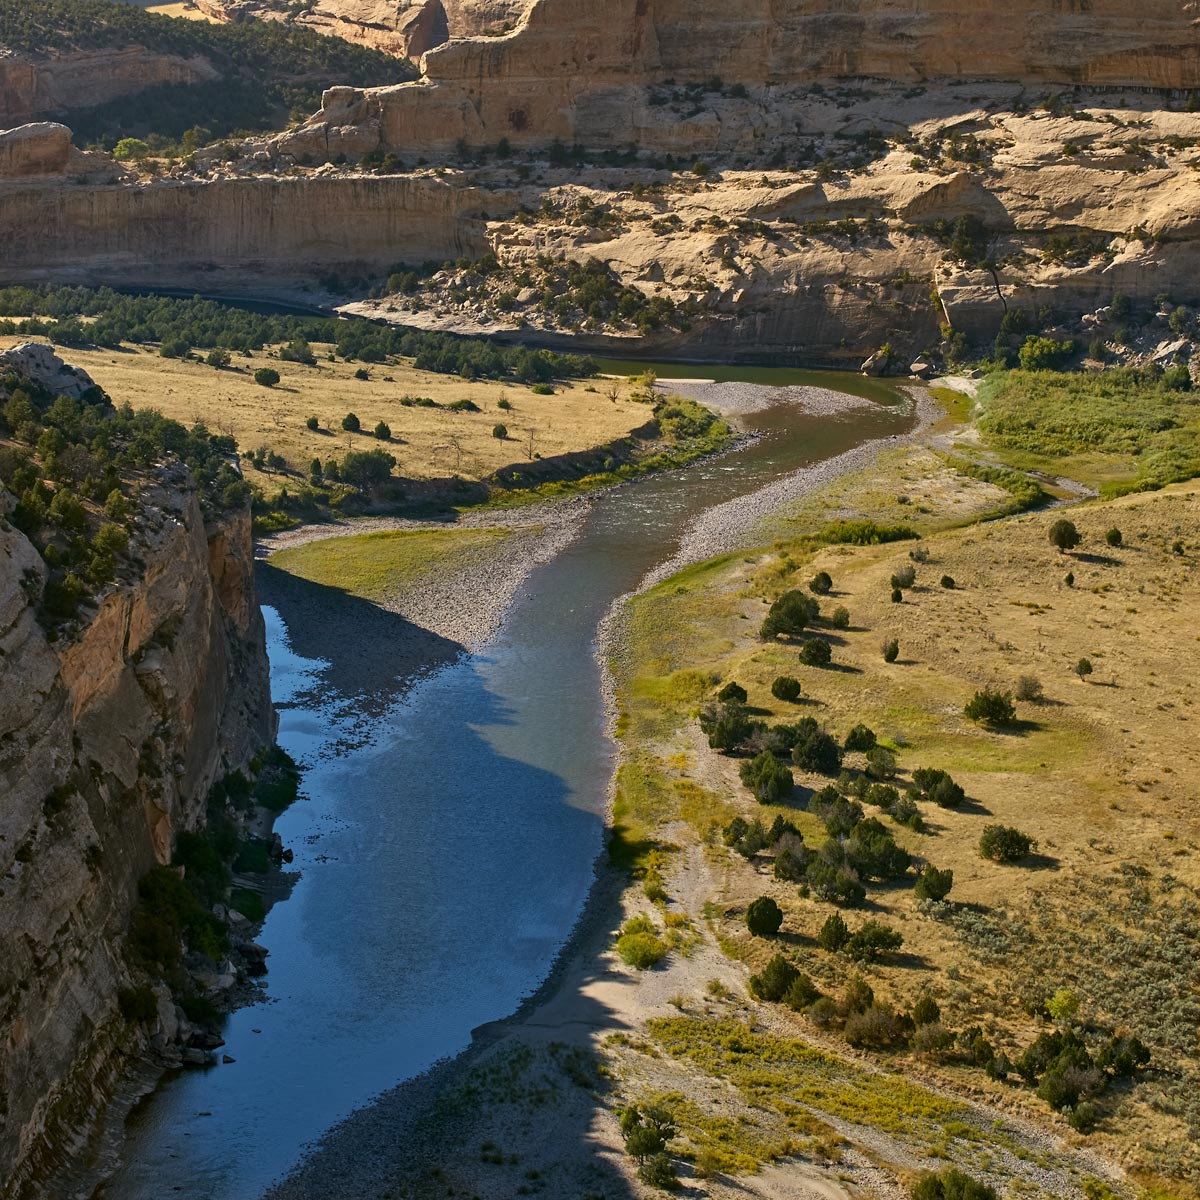 Dino-Yampa-Downstream-of-Wagon-Wheel-Point-Square-9-16-16-Web